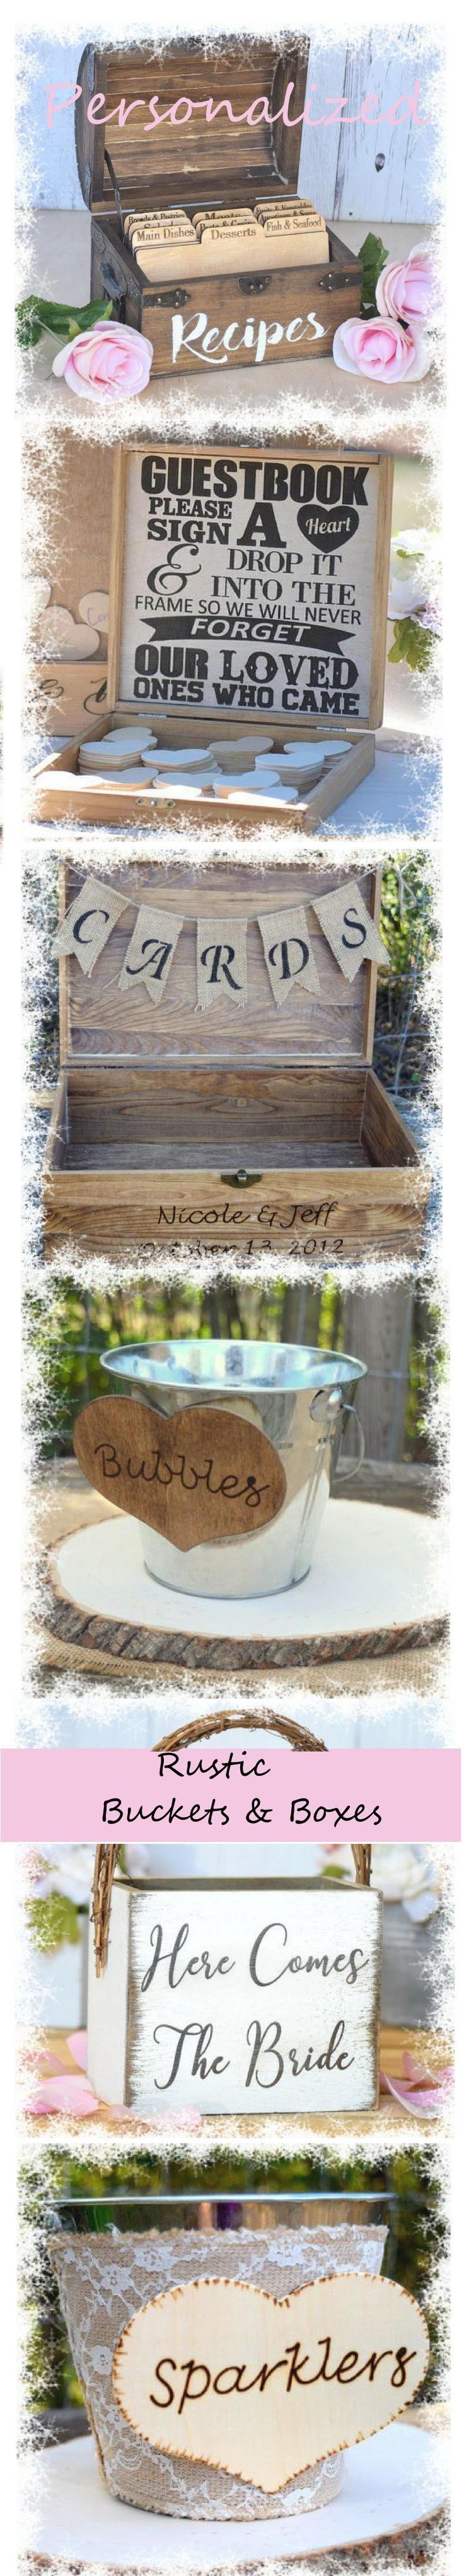 I just LOVE this wooden recipe box!!!Personalized rustic metallic buckets and wooden boxes.Ideal for organizing everything in  parties,wedding receptions or just recipes and spatulas in your kitchen! #organizing #bucket#ad#rustic#wedding#organizing